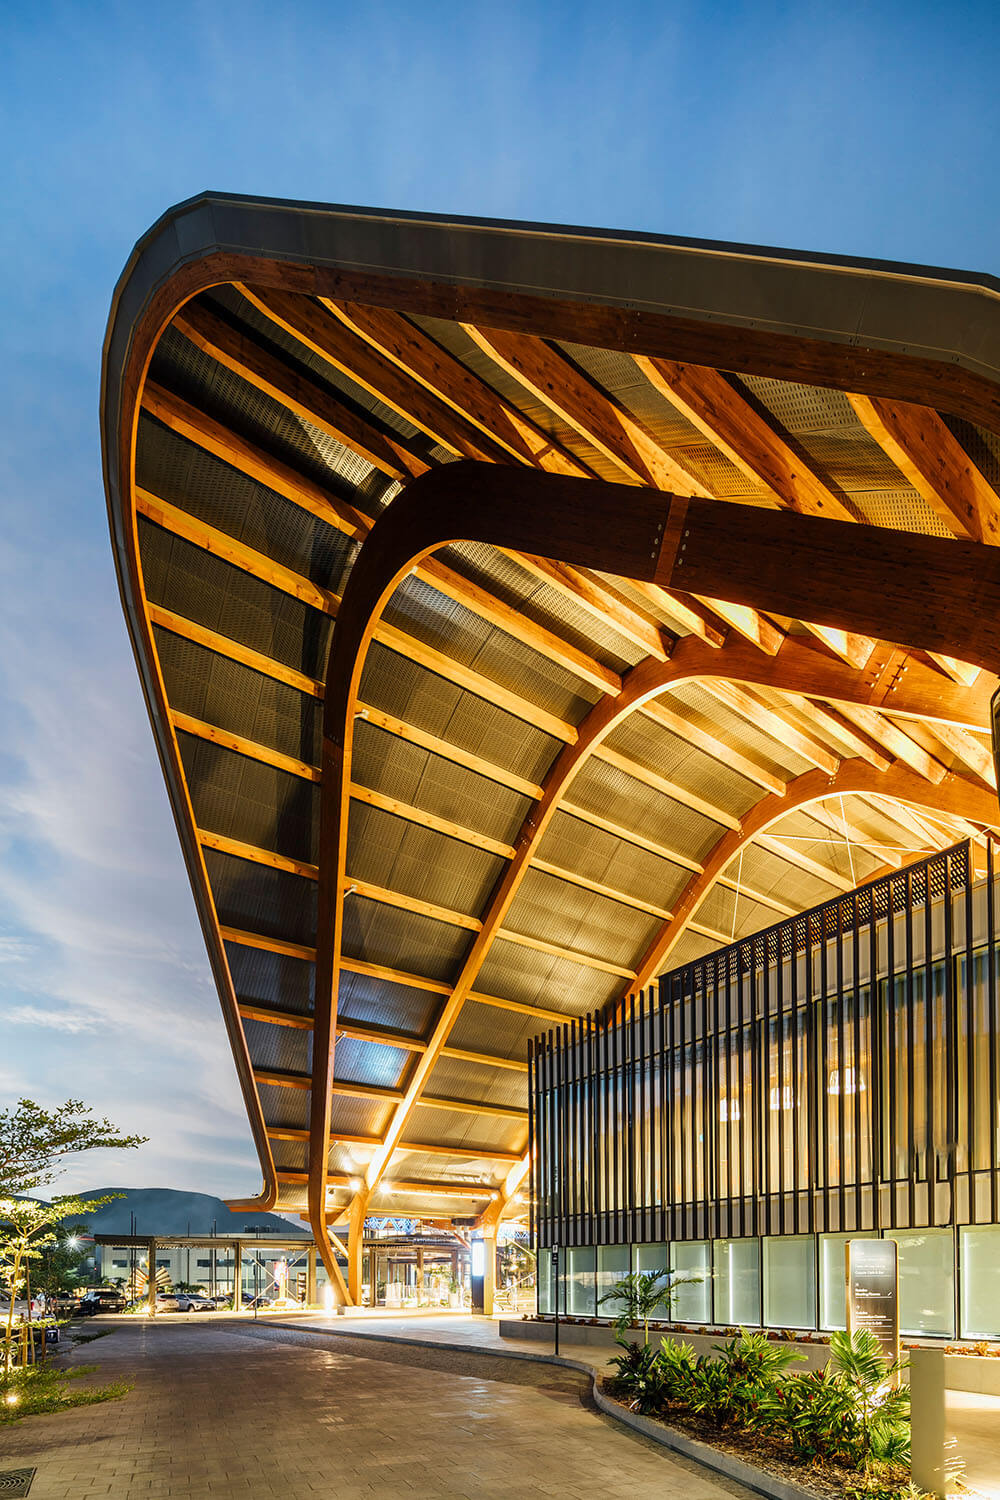 100m-long pacific longhouse roof